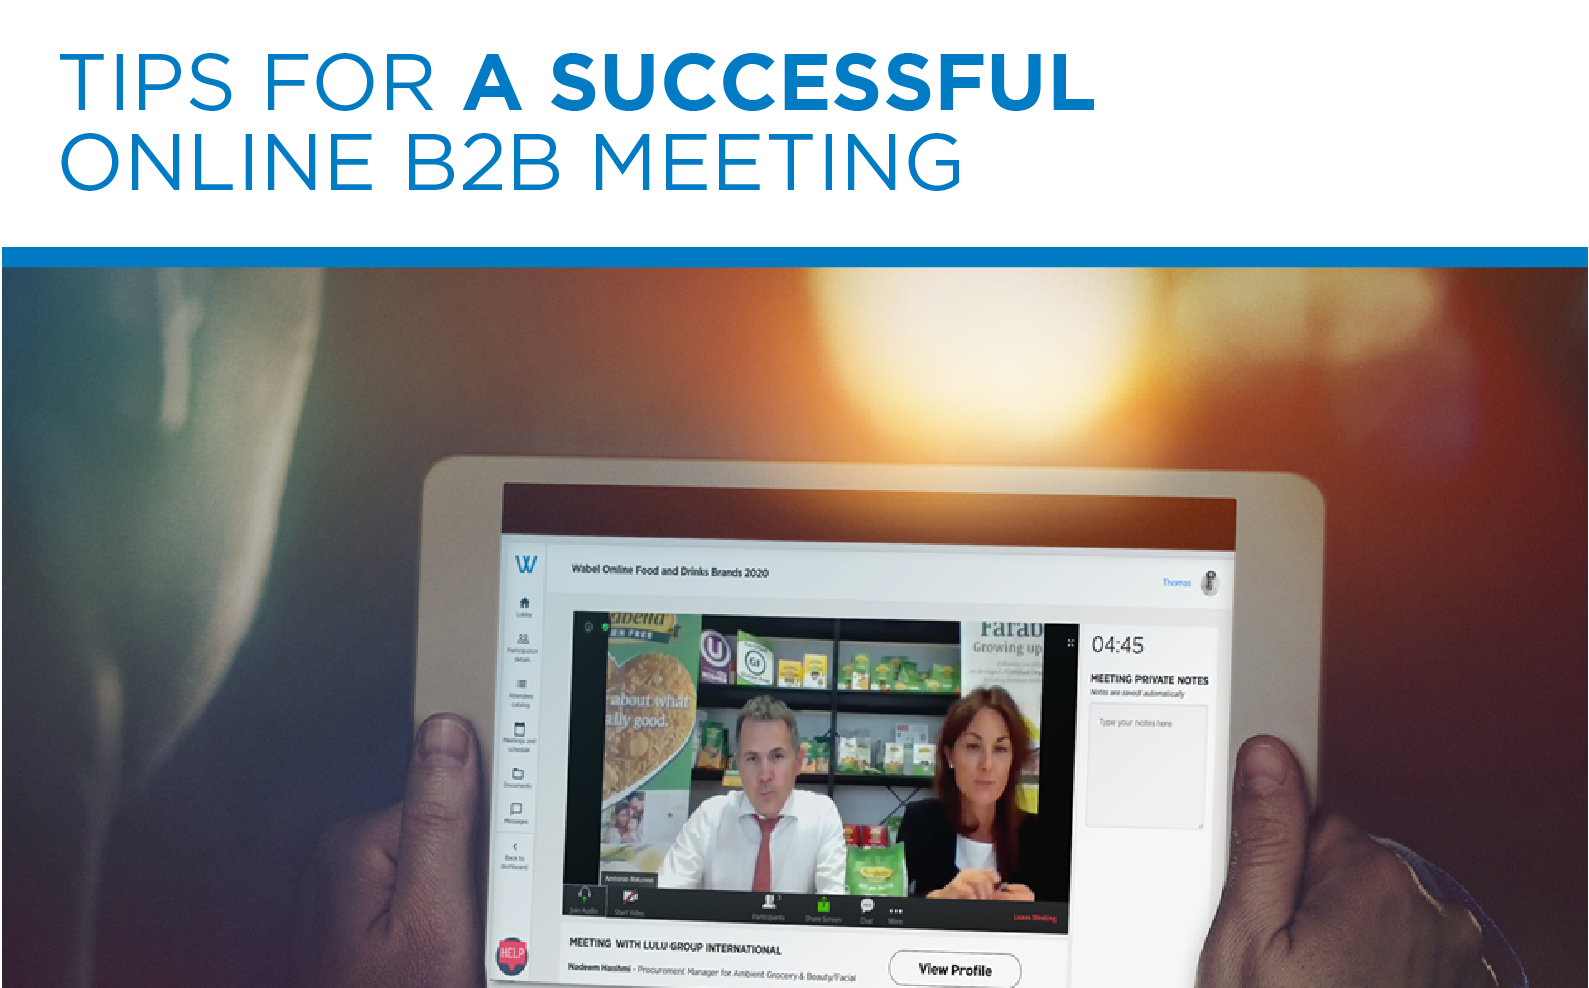 Tips for a successful online B2B meeting